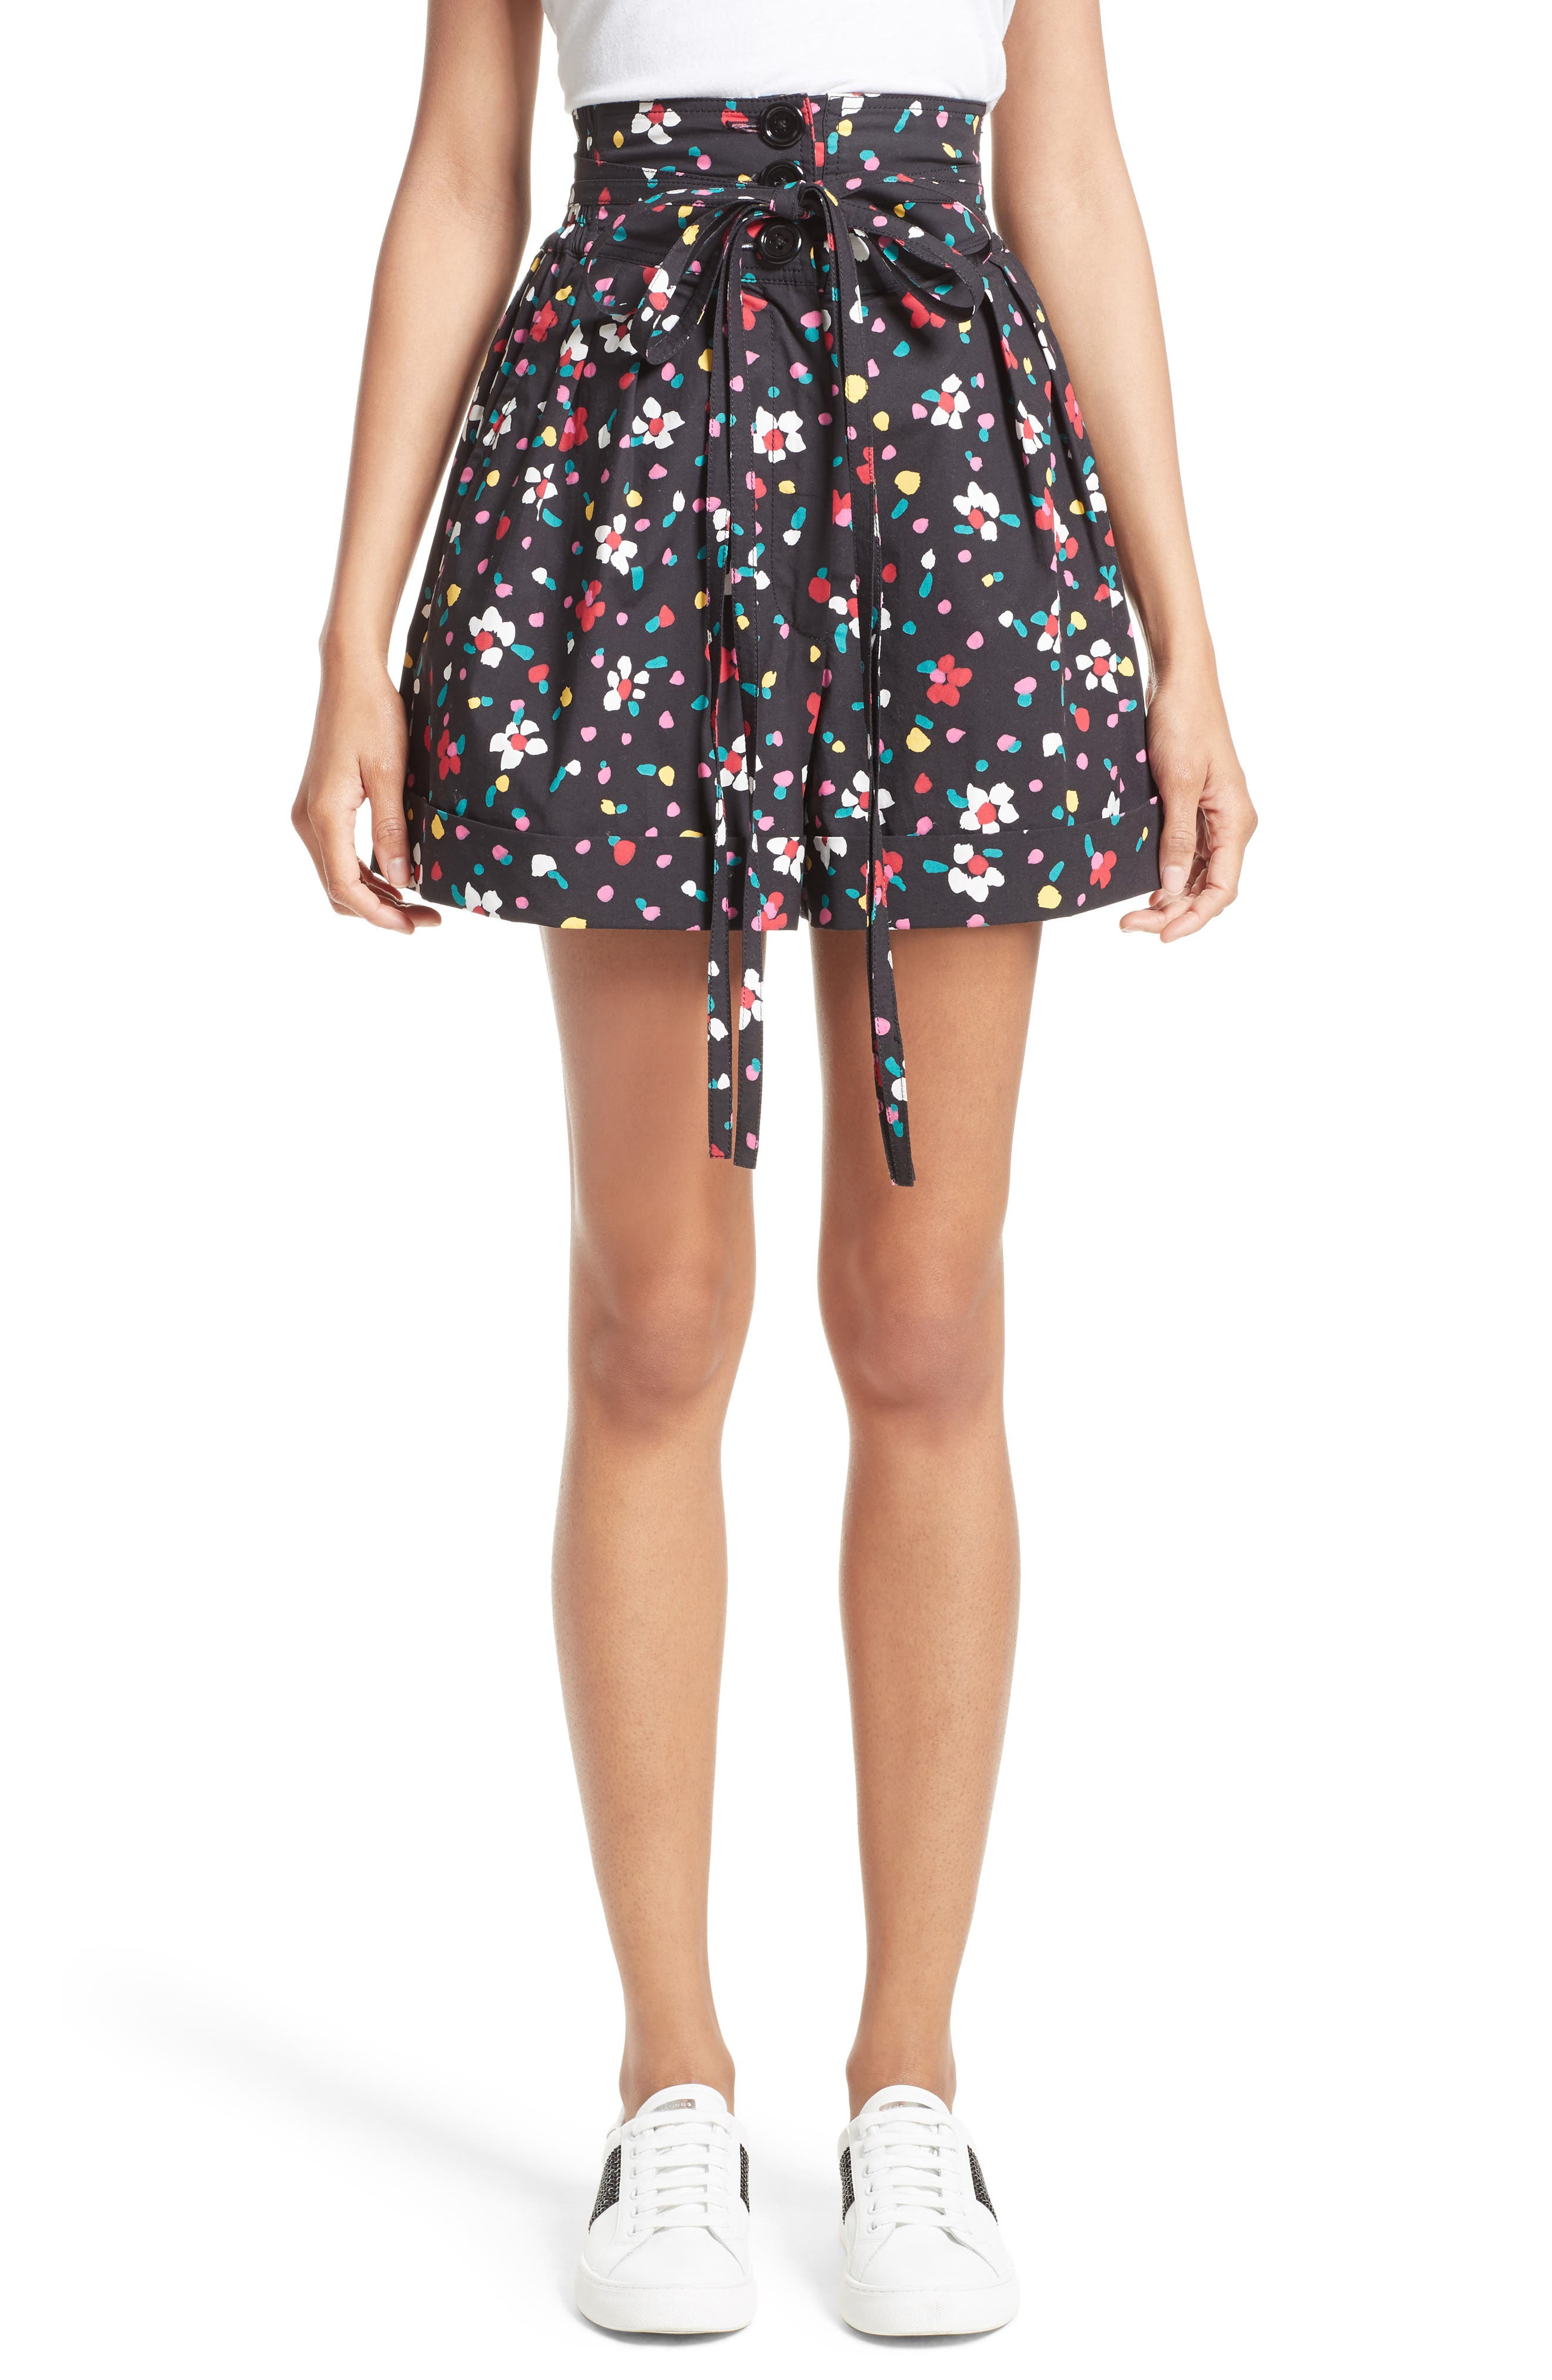 Alternate Image 1 Selected - MARC JACOBS Floral Cotton High Waist Shorts